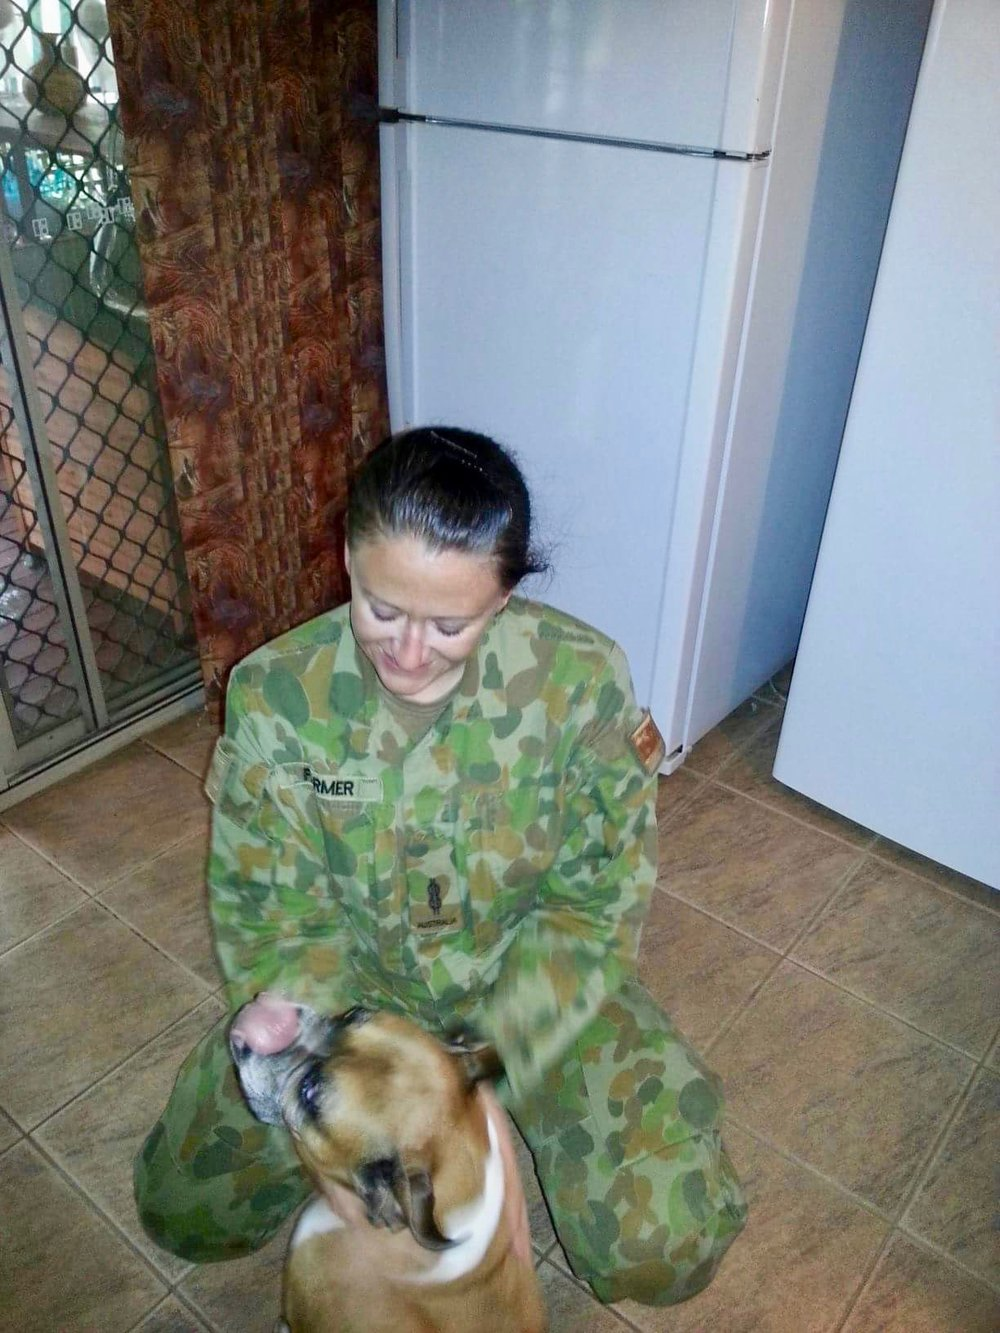 PIC 20    2013 – AUSTRALIA – Day I landed back in Australia from overseas, my M&D took me home (Narangba, Brisbane) to get changed before I had to catch a connecting flight to Cairns (home) and that's my dog, Kira.jpg